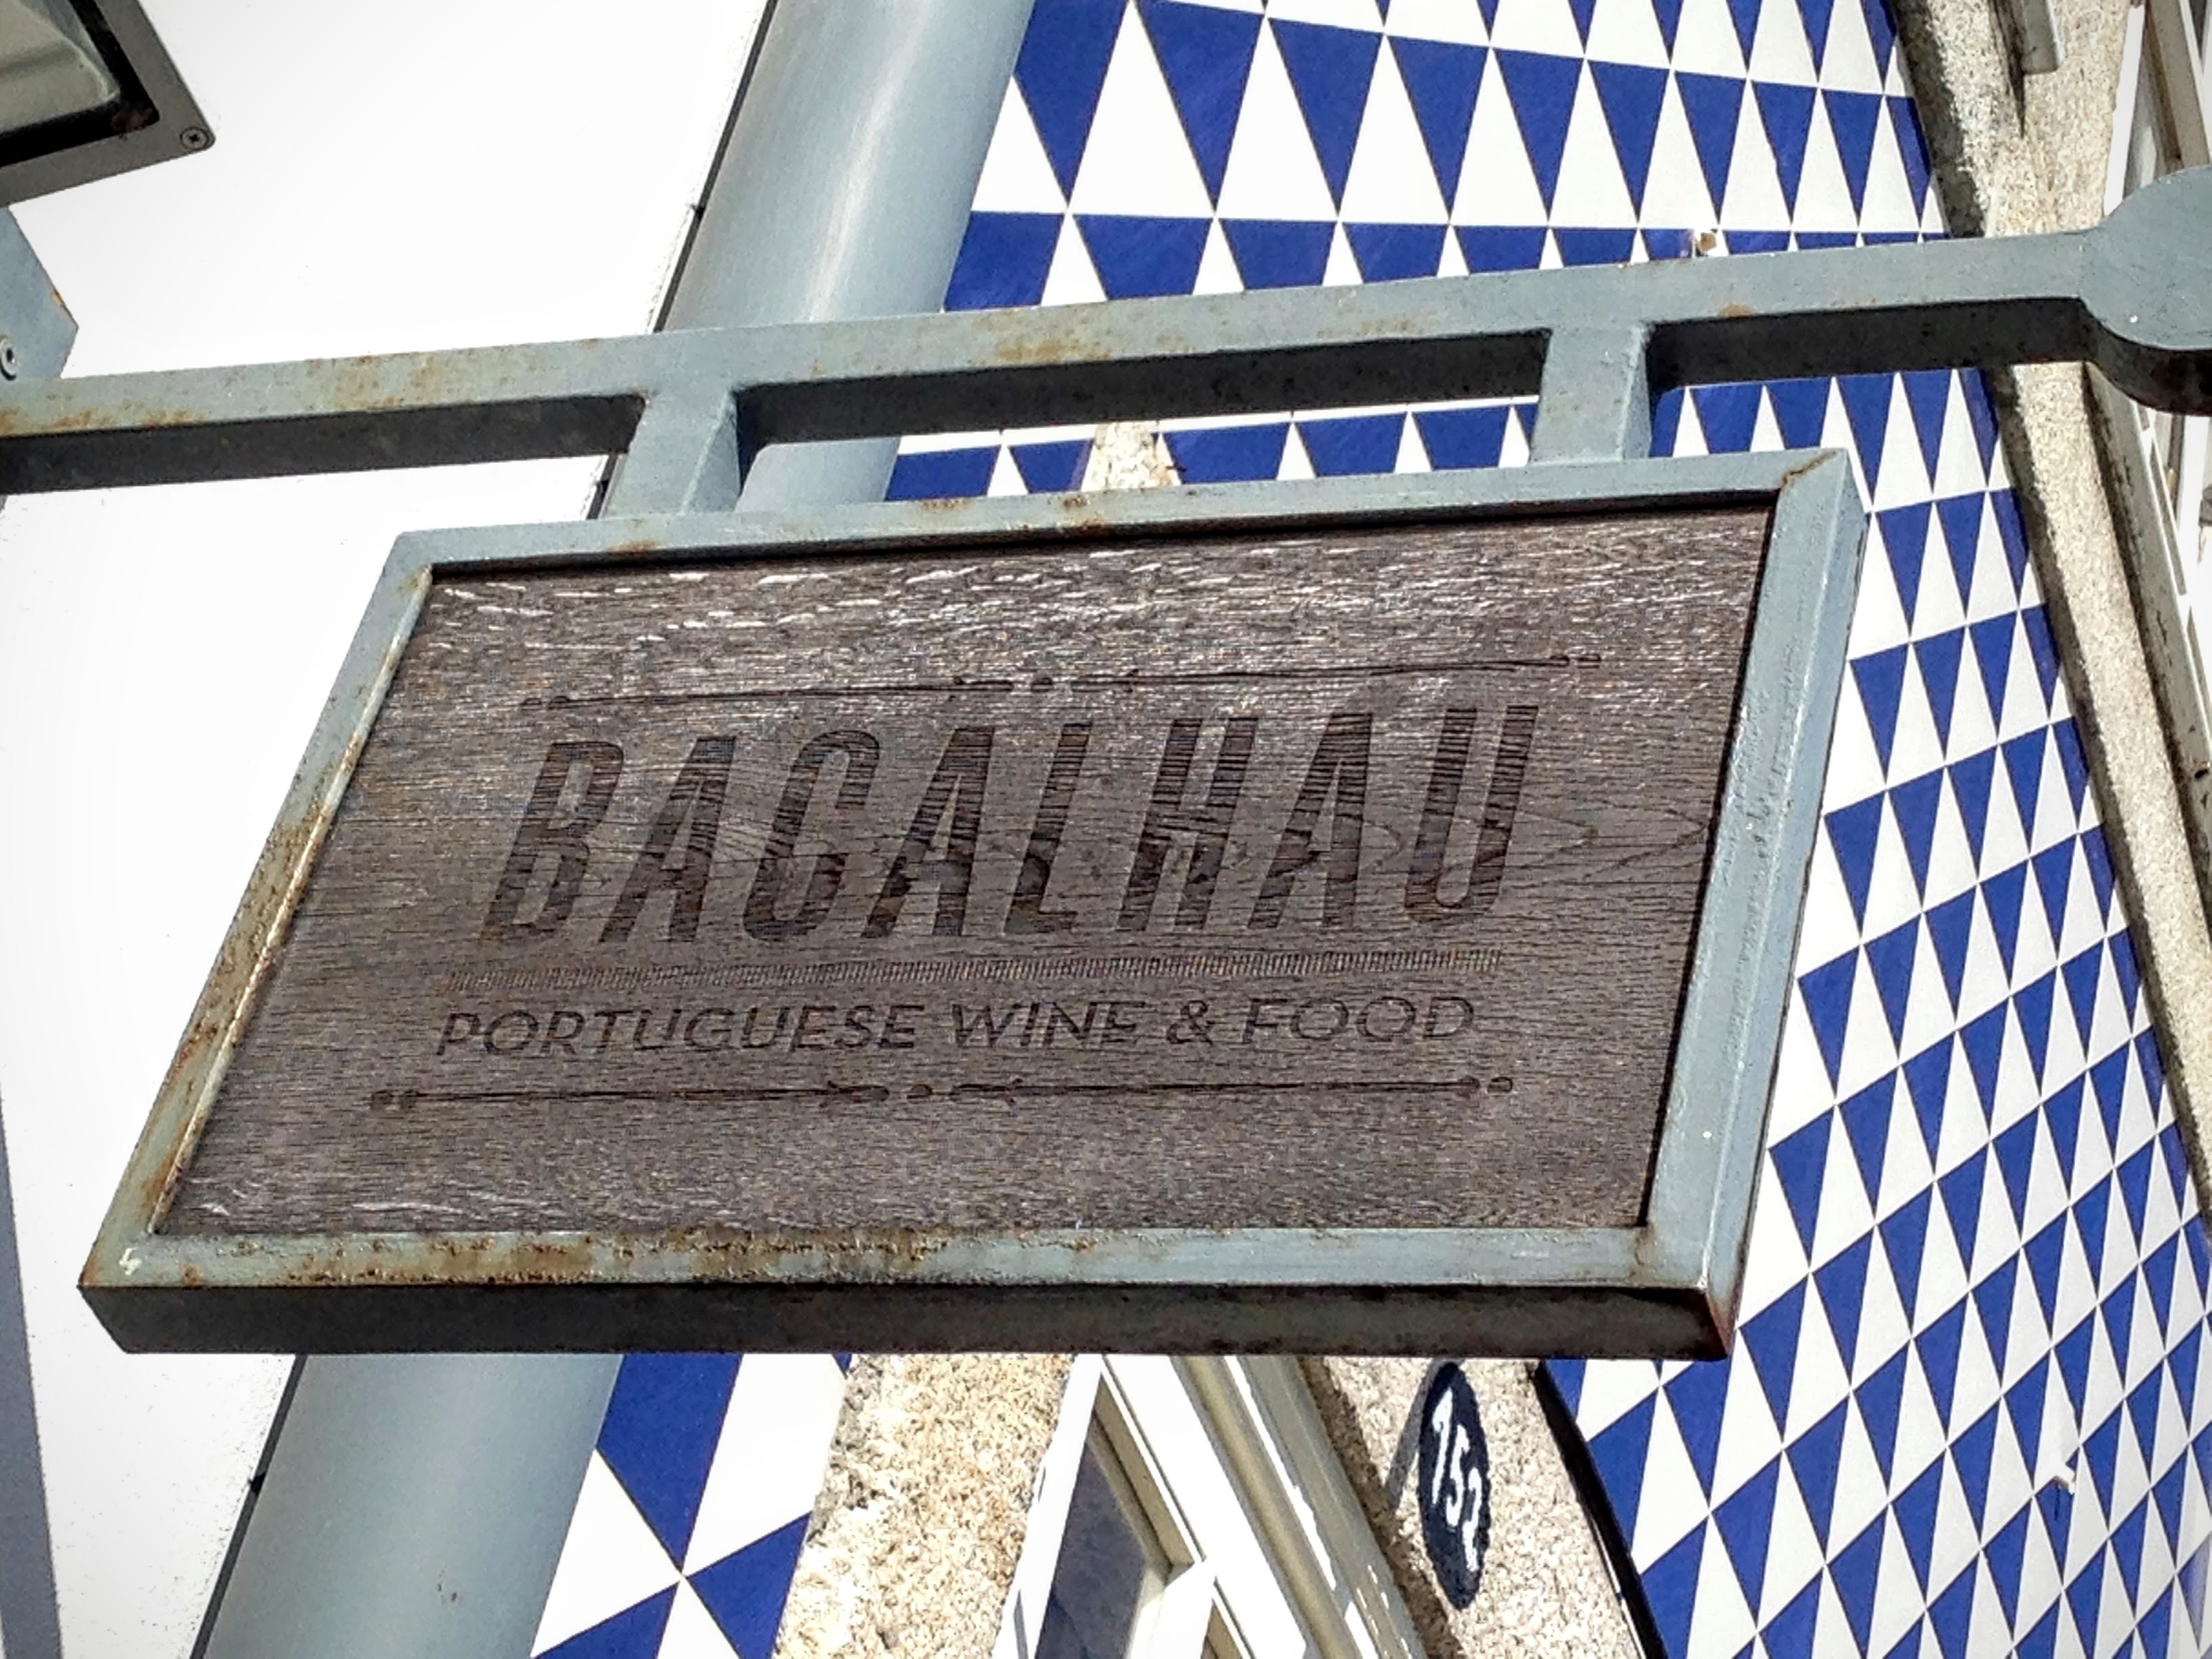 Bacalhau Portuguese Wine & Food